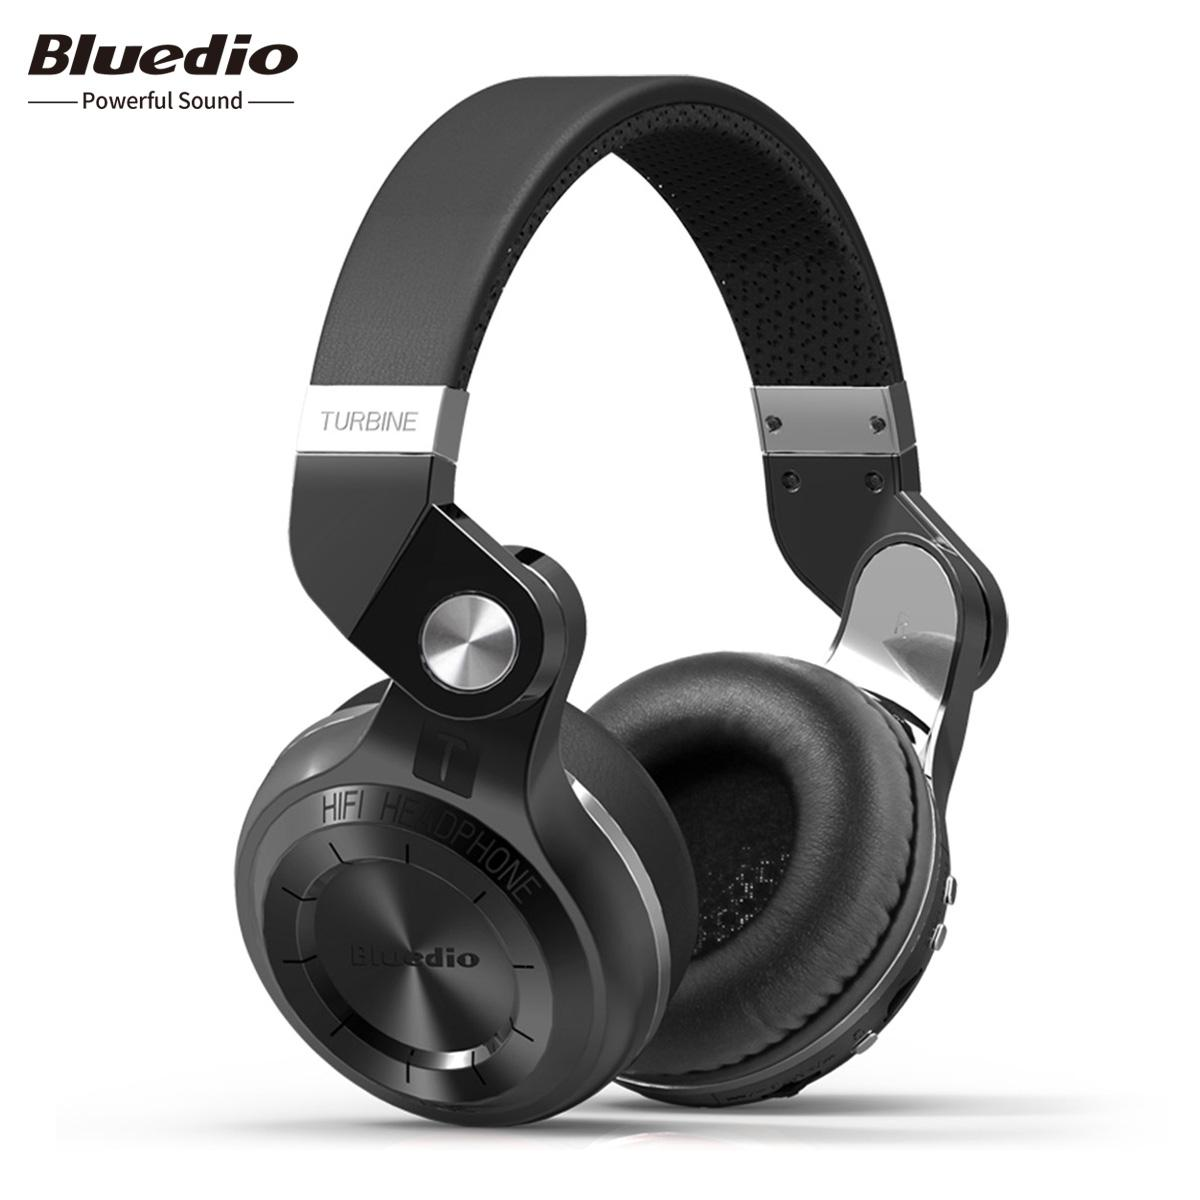 bbc56e3c880 Bluedio T2+ Bluetooth Headphone Bluetooth 5.0 On- hear Headphone Support  Cloud Service SD Card Line